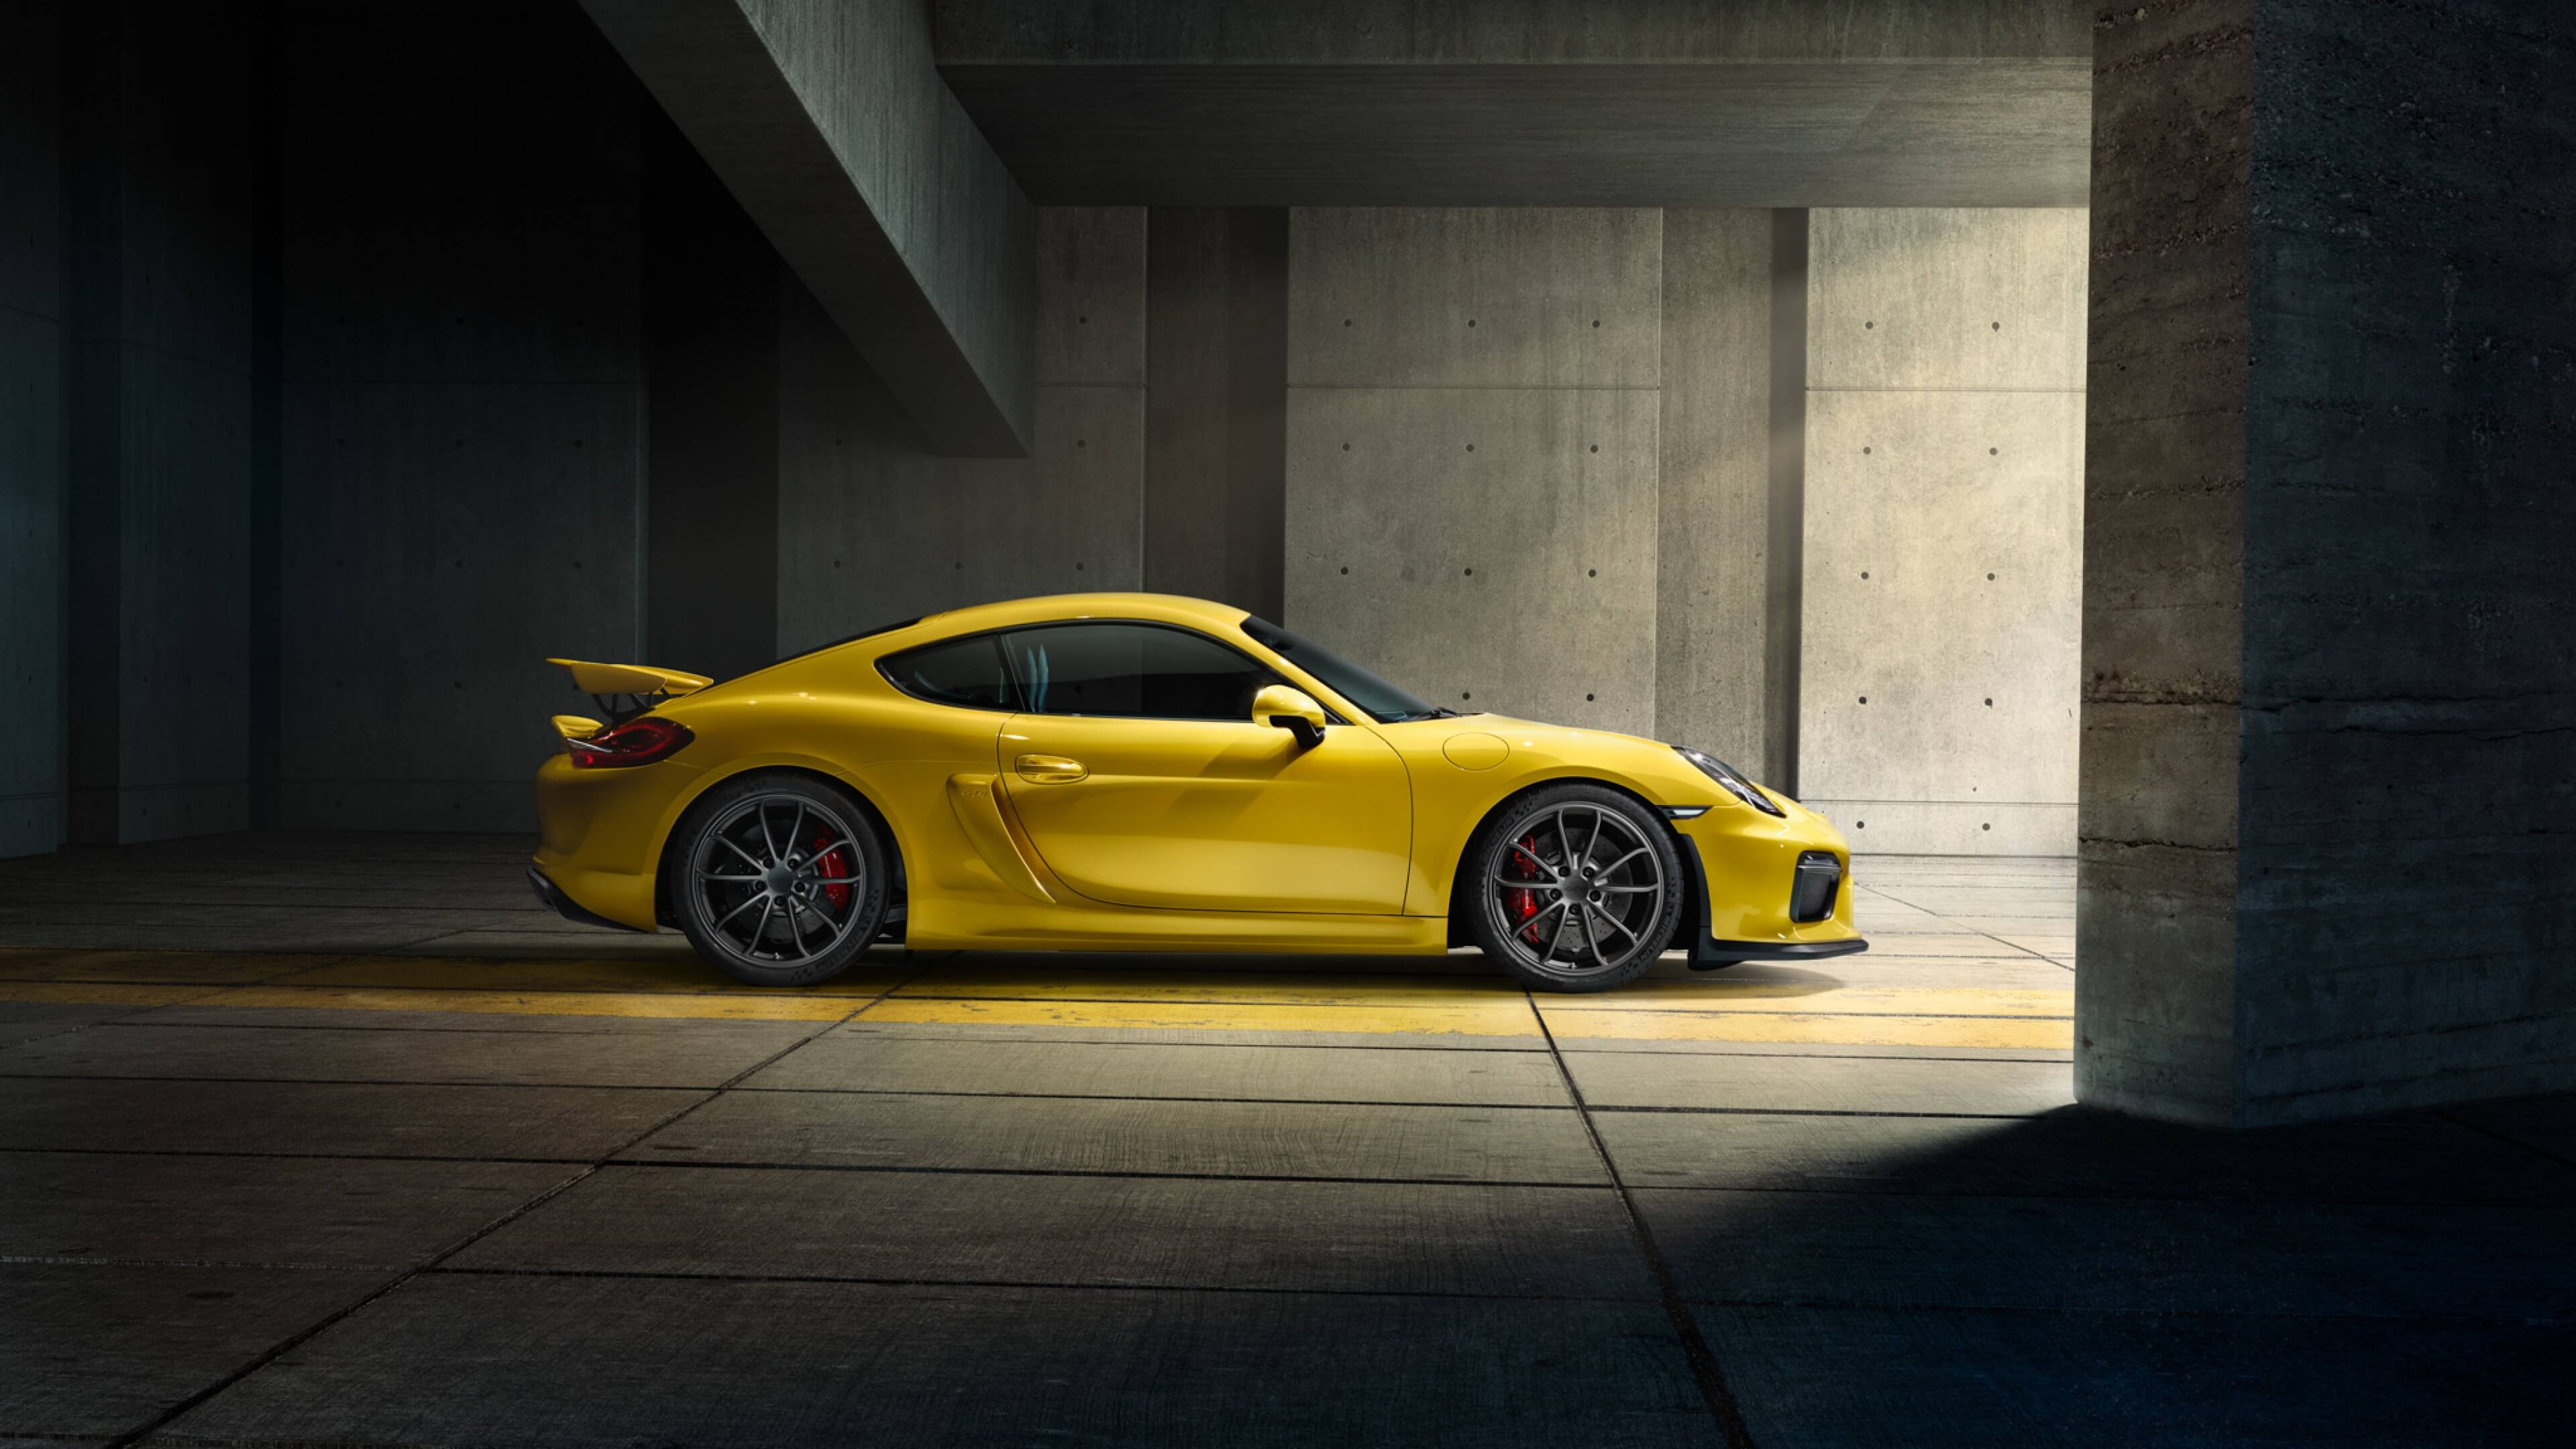 daytona-beach-porsche-cayman-gt4-yellow-2015-instant-luxury-rentals